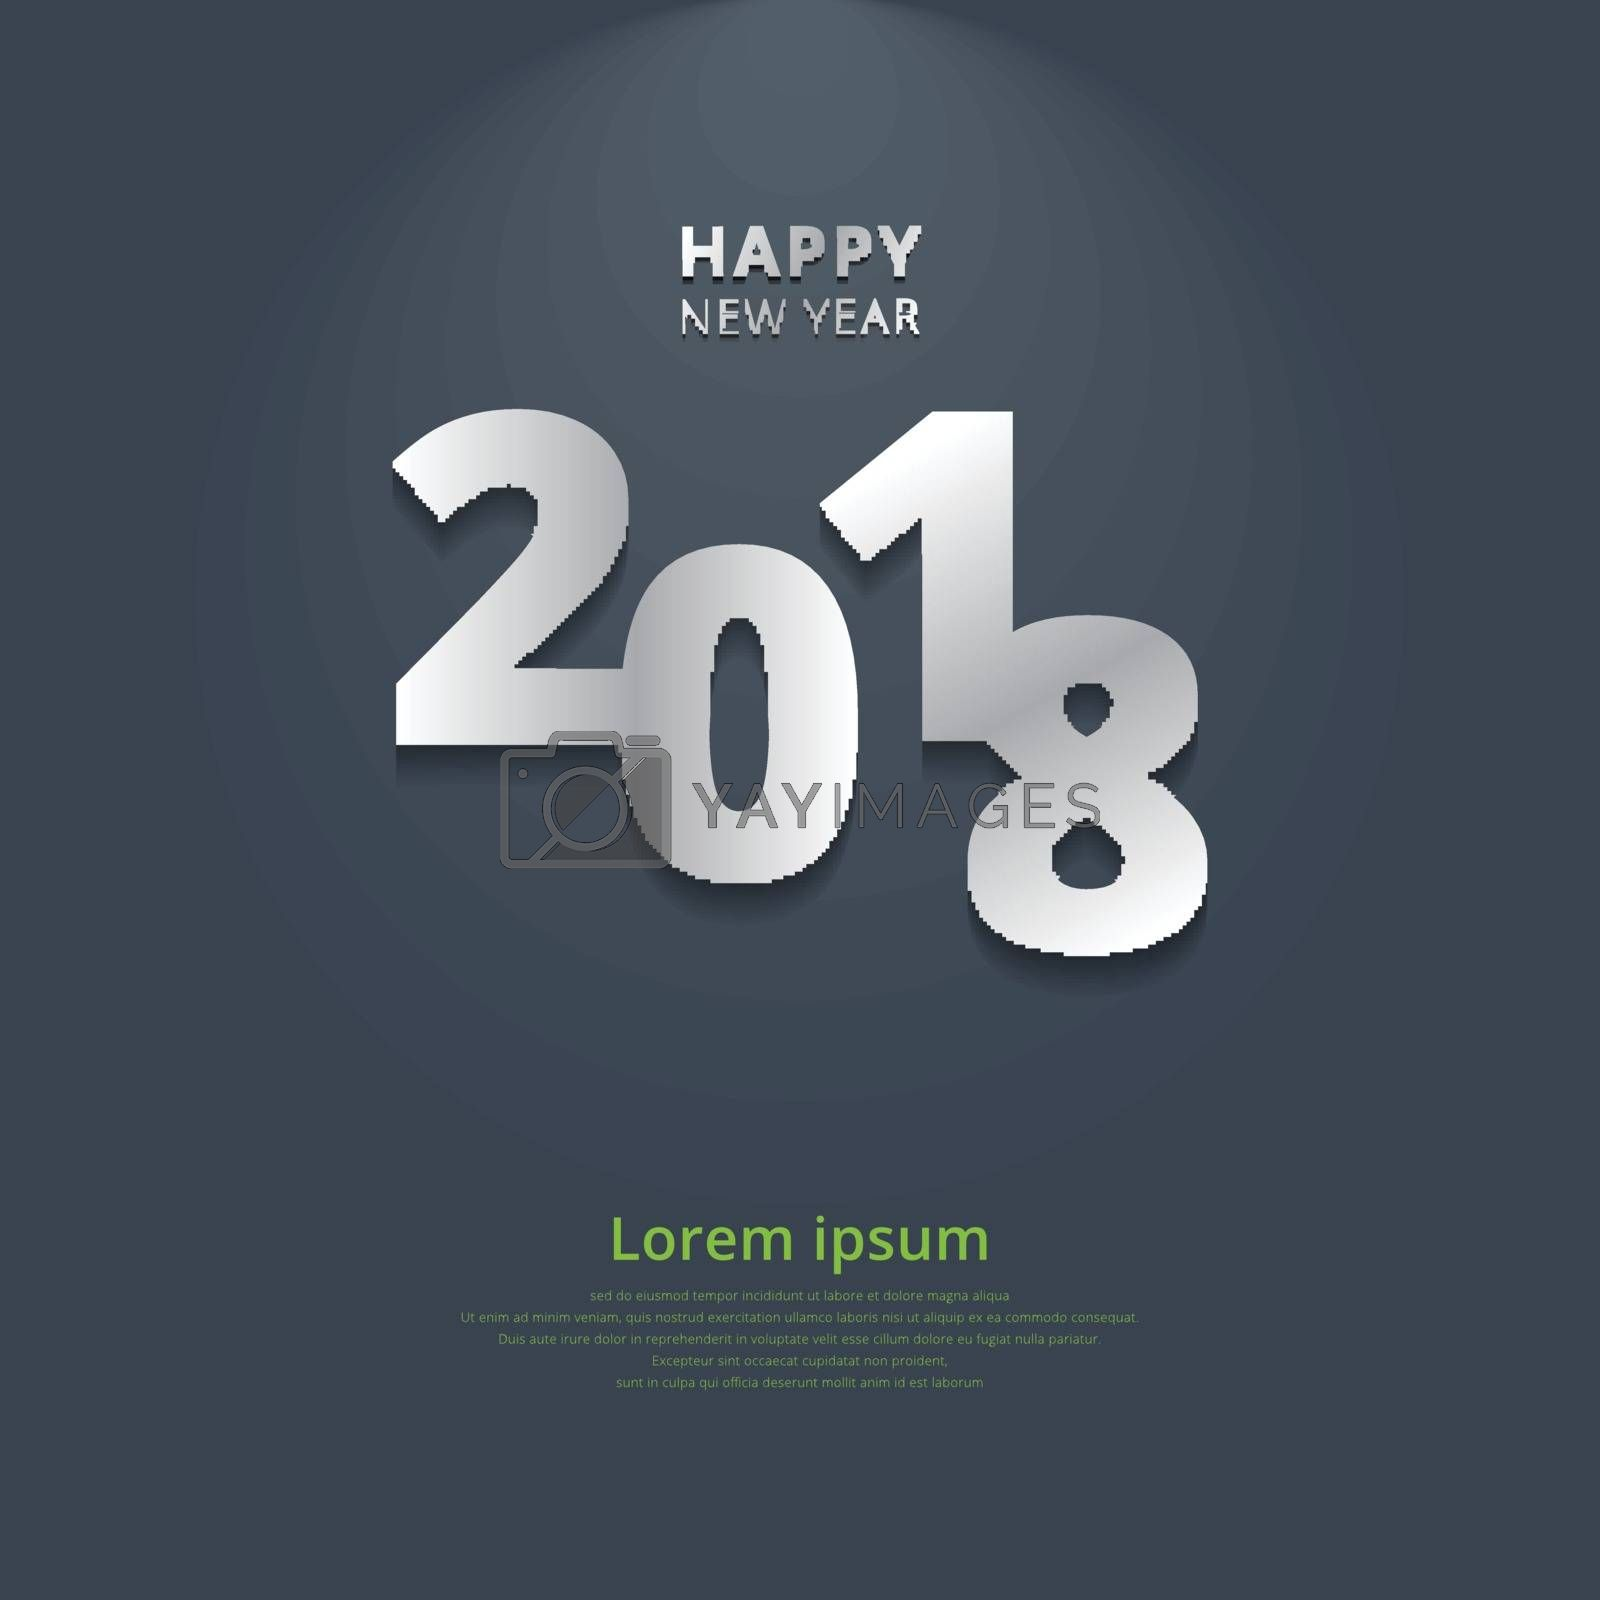 Happy new year 2018 with lighting on gray background. Vector illustration